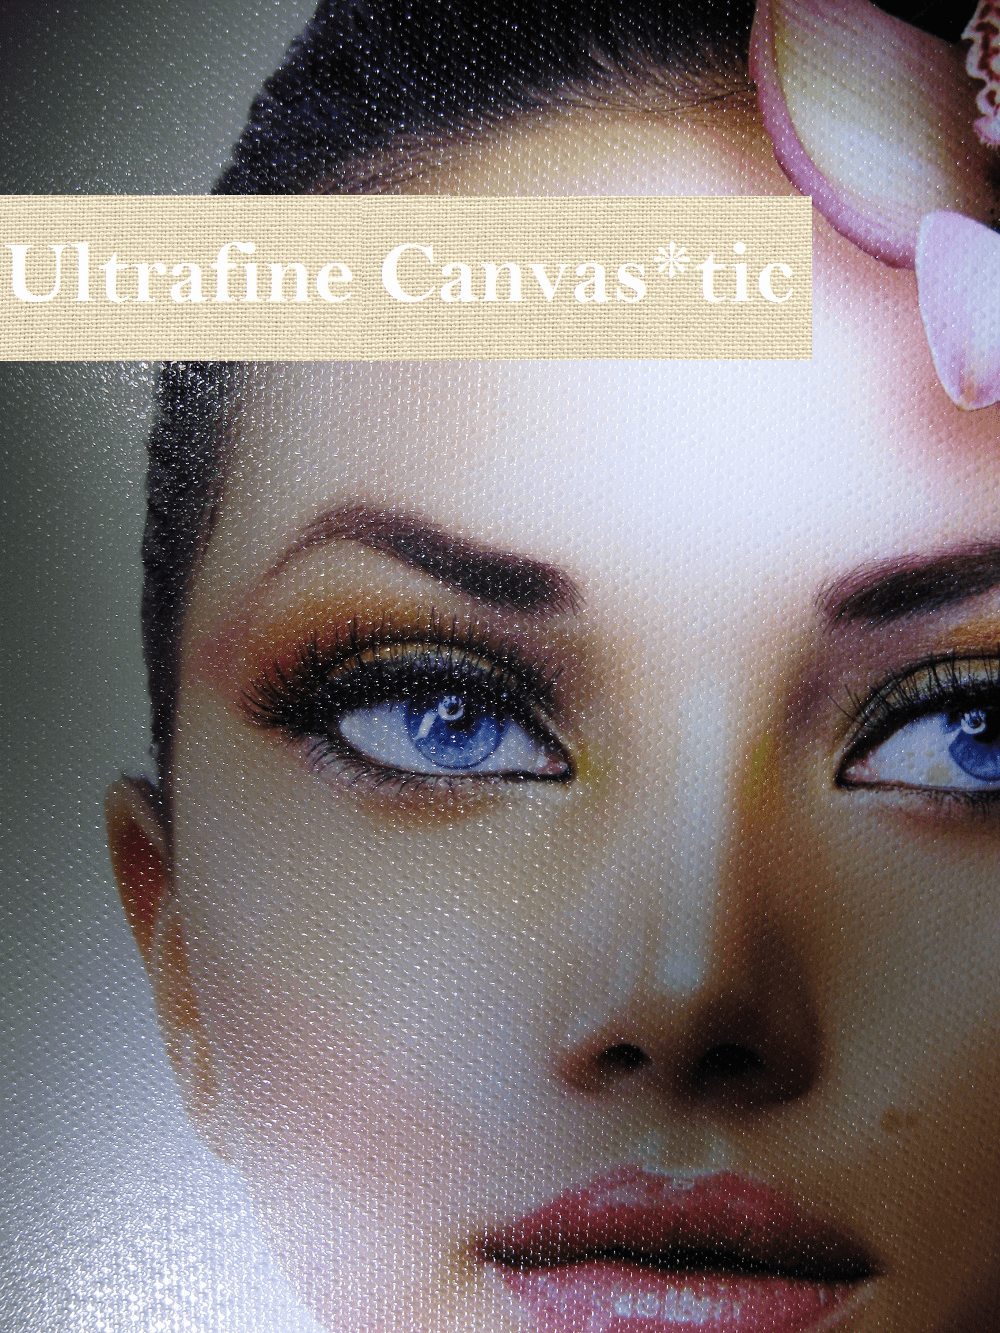 "Ultrafine Canvas*tic Canvas Textured Matte Fabric Photo Inkjet 19 Mil 36"" x 75' Roll"